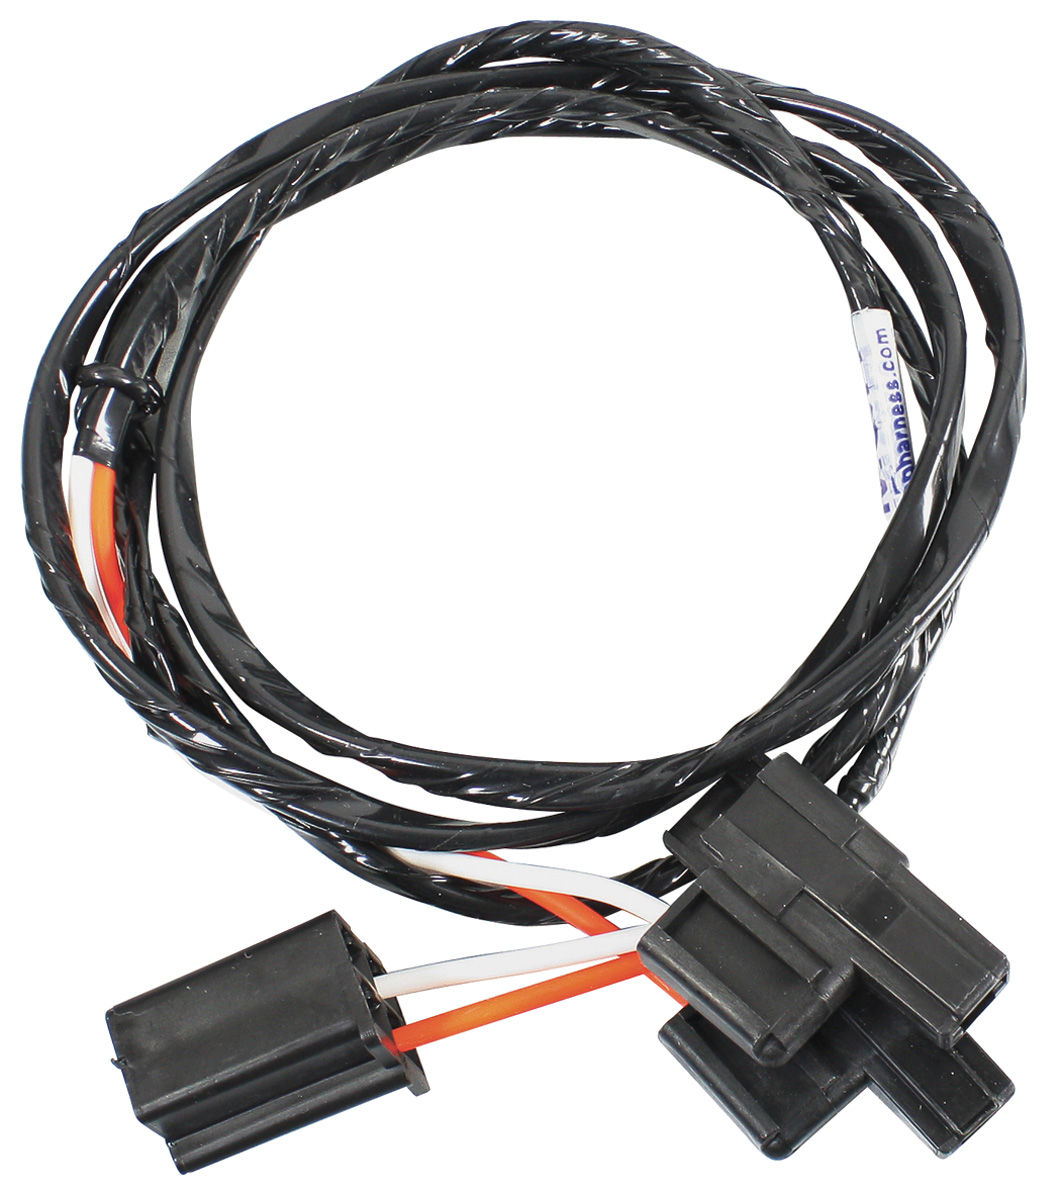 1964-65 gto console wiring extension harness 4-spd., by m ... 1966 gto wiring harness 1964 gto wiring harness